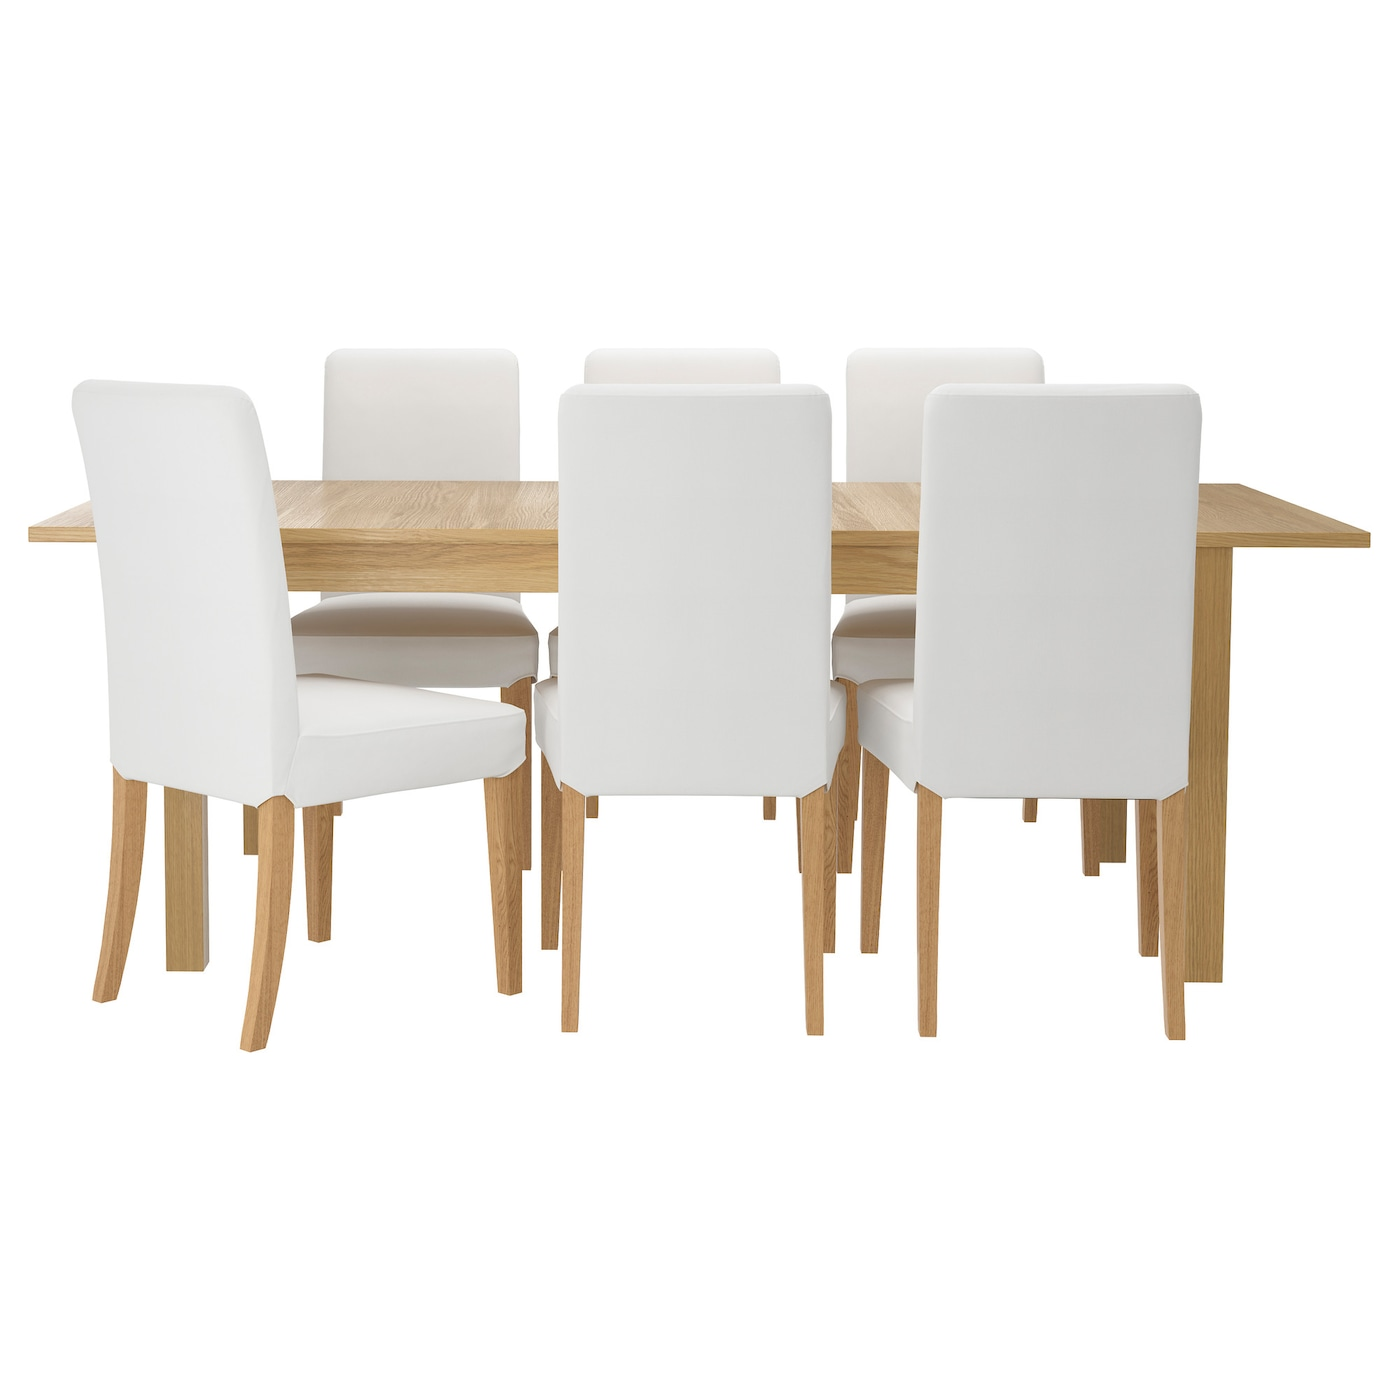 6 seater dining table chairs ikea for Table 6 personnes ikea